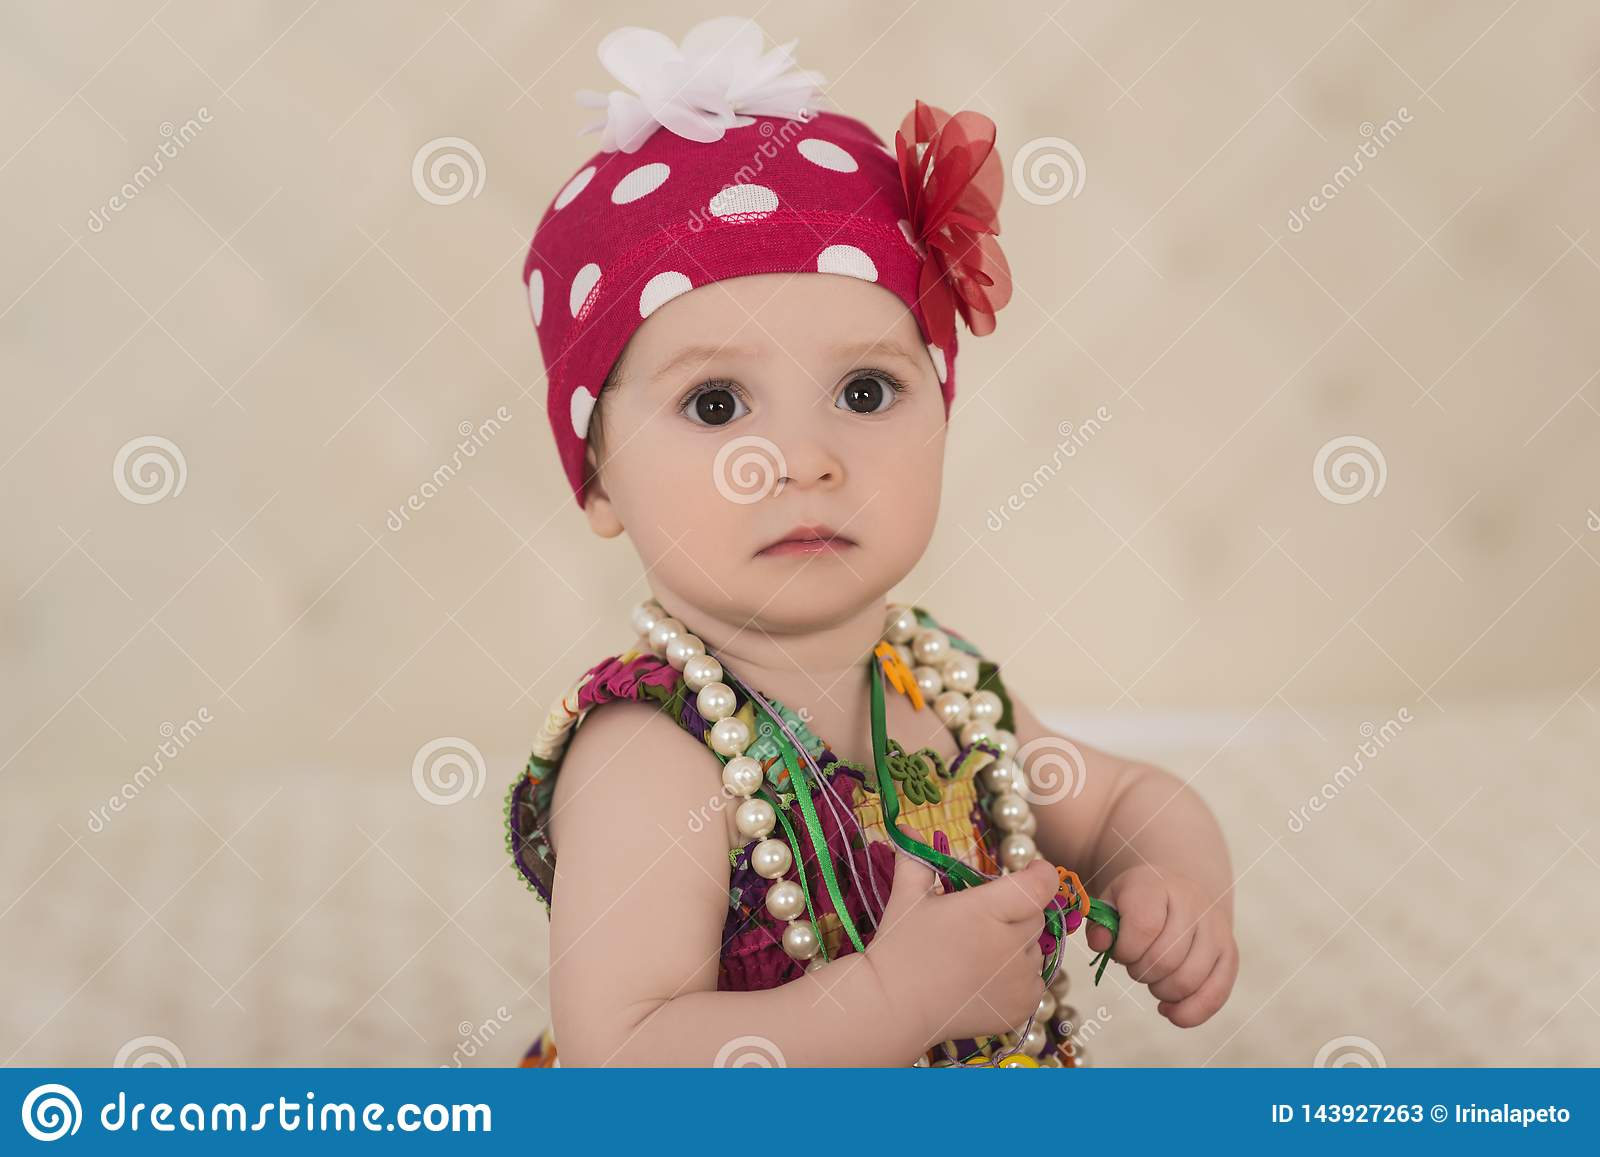 63d6d4f3eca Portrait Of Cute Baby Girl With Big Eyes